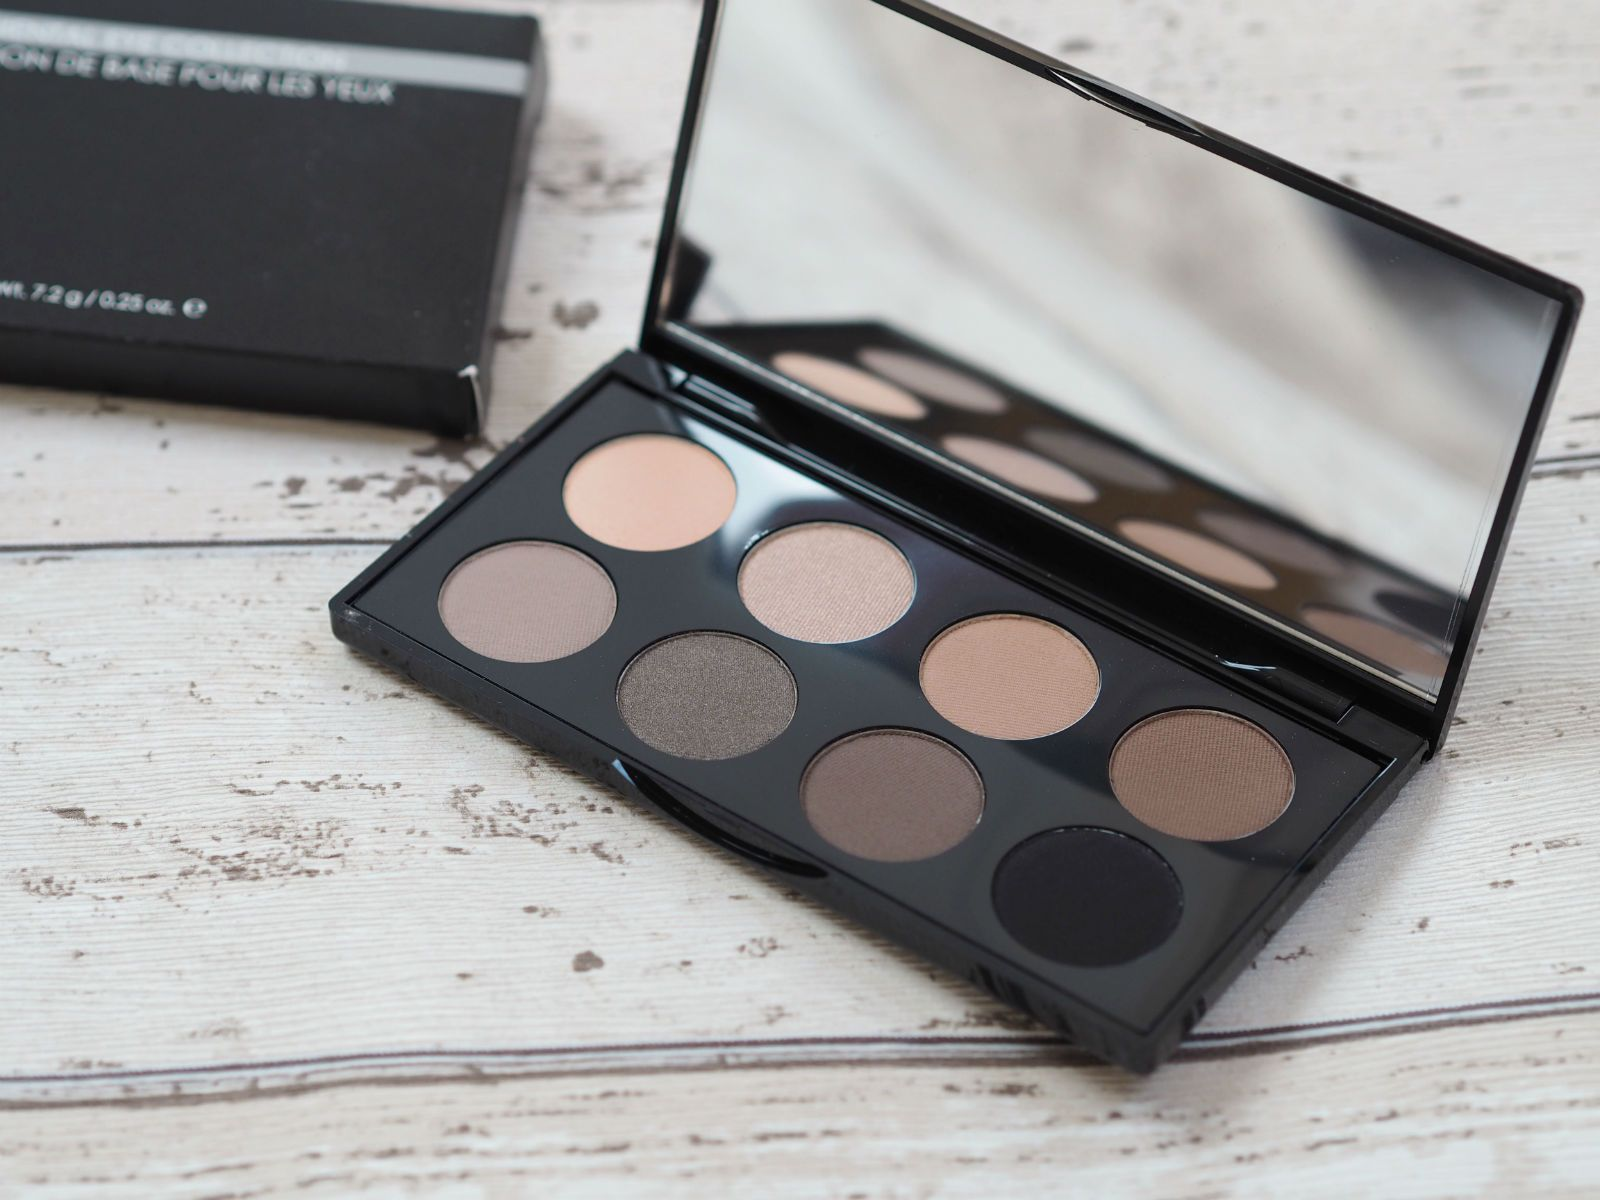 April Beauty Favourites Glo mineral makeup, Glo minerals